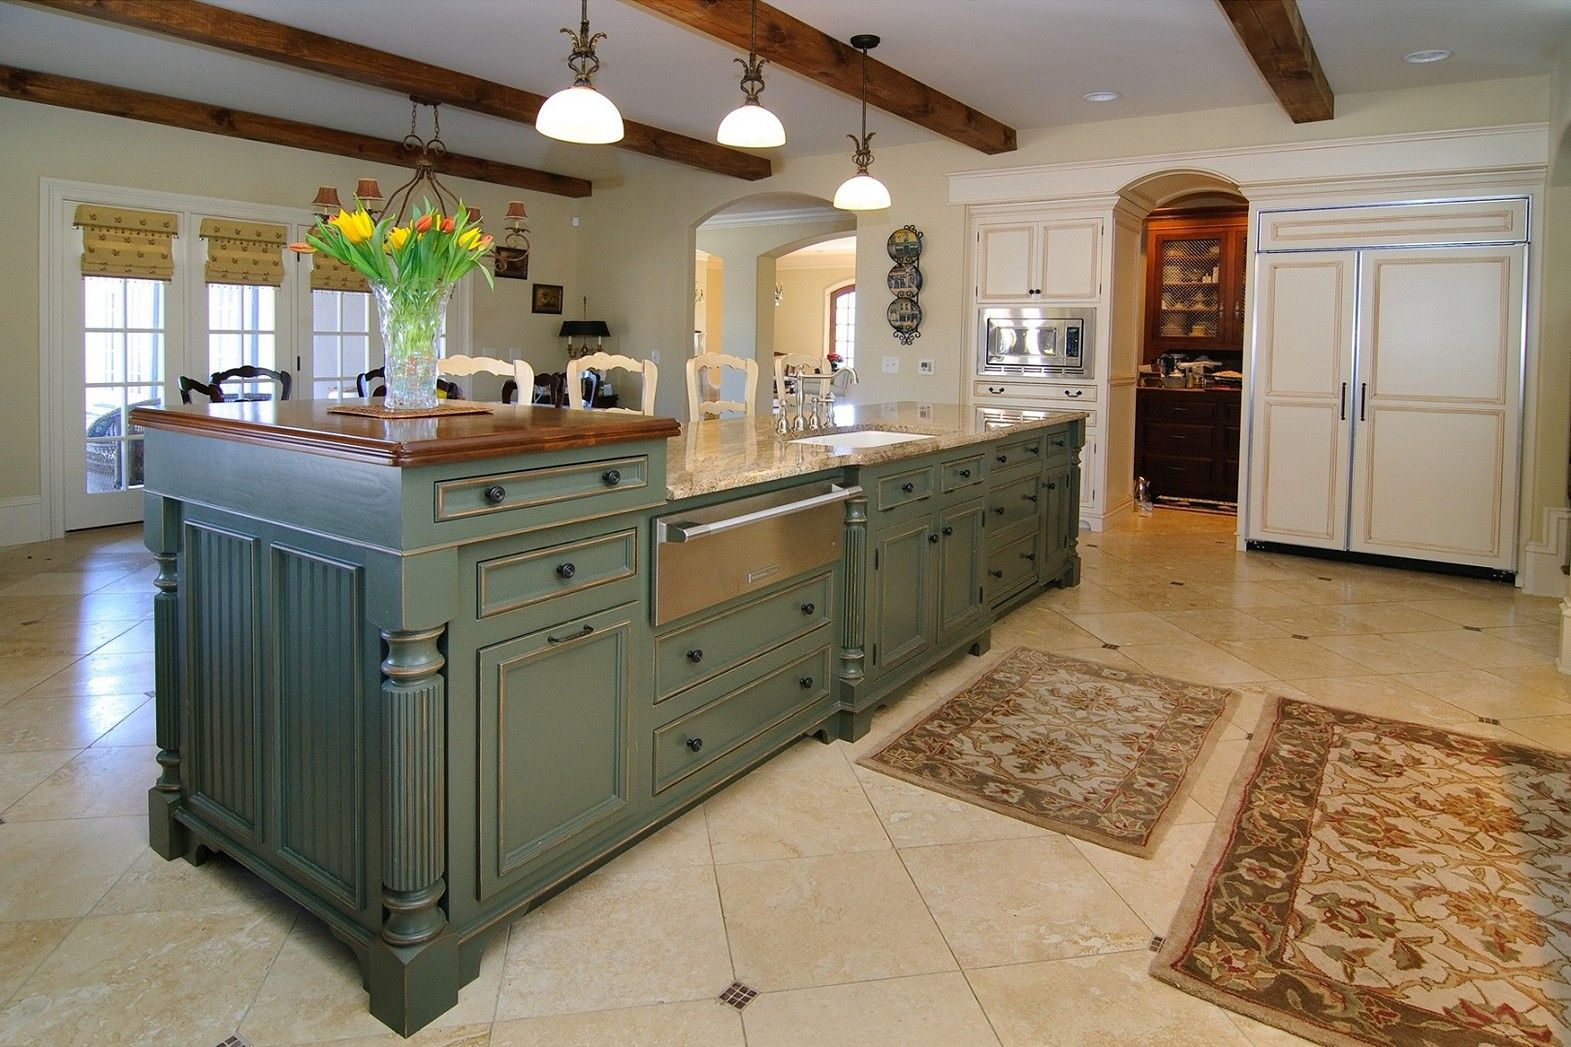 pin by shelley austin on old school kitchen island with sink custom kitchen remodel kitchen on kitchen island ideas with sink id=54419